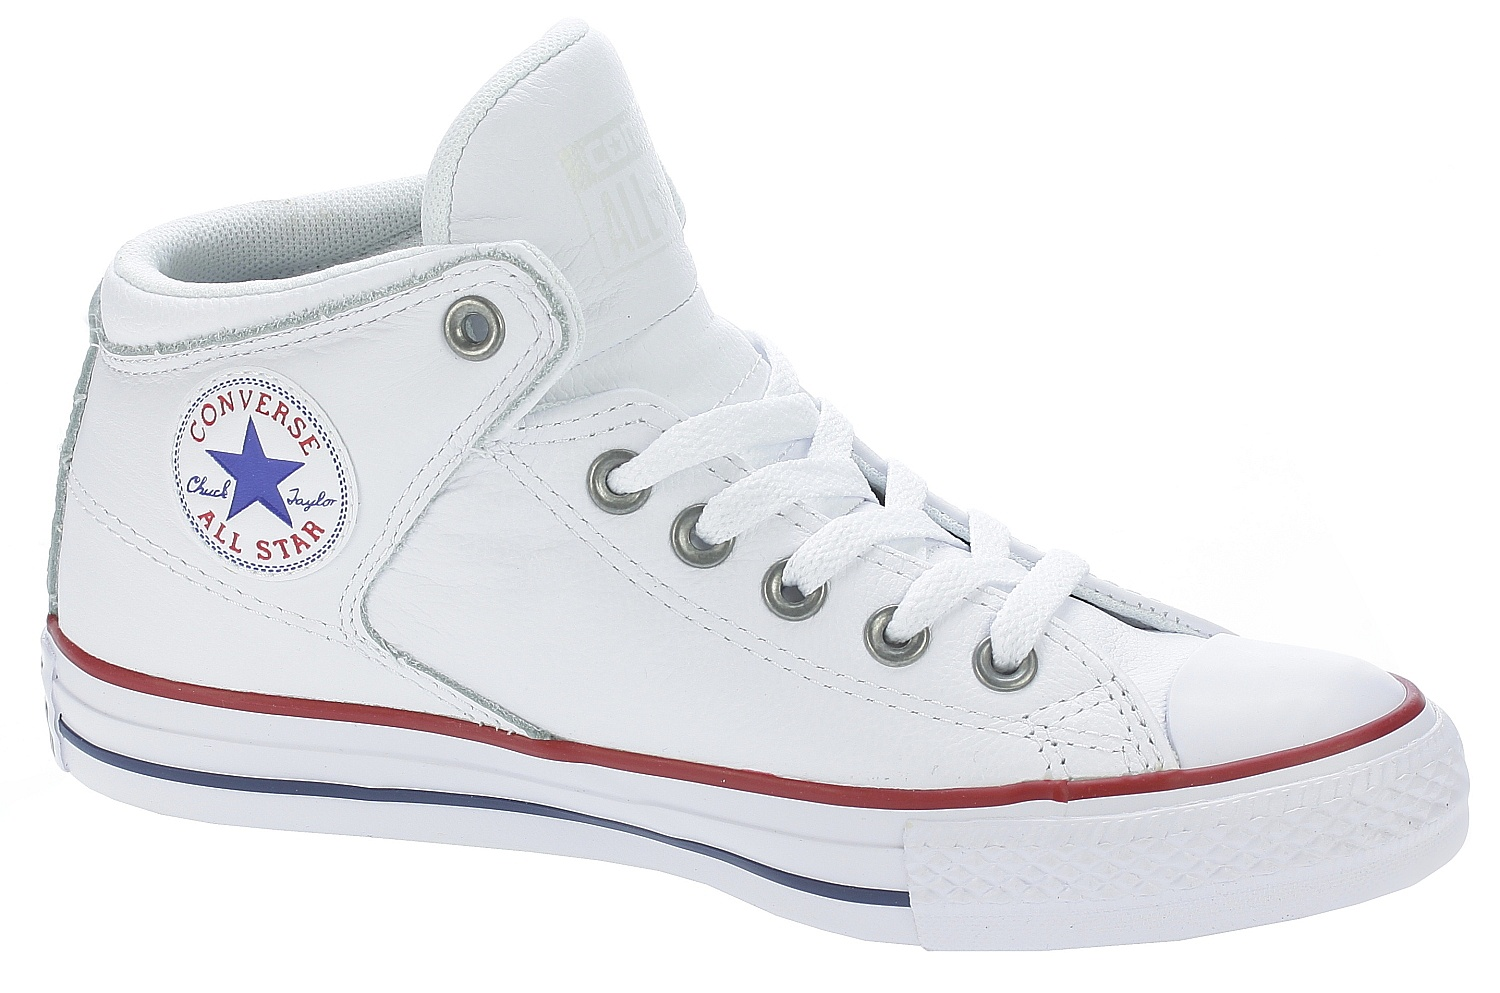 e2ad083d18d topánky Converse Chuck Taylor All Star Hight Street Leather Hi -  151053 White Garnet White - Snowboard shop